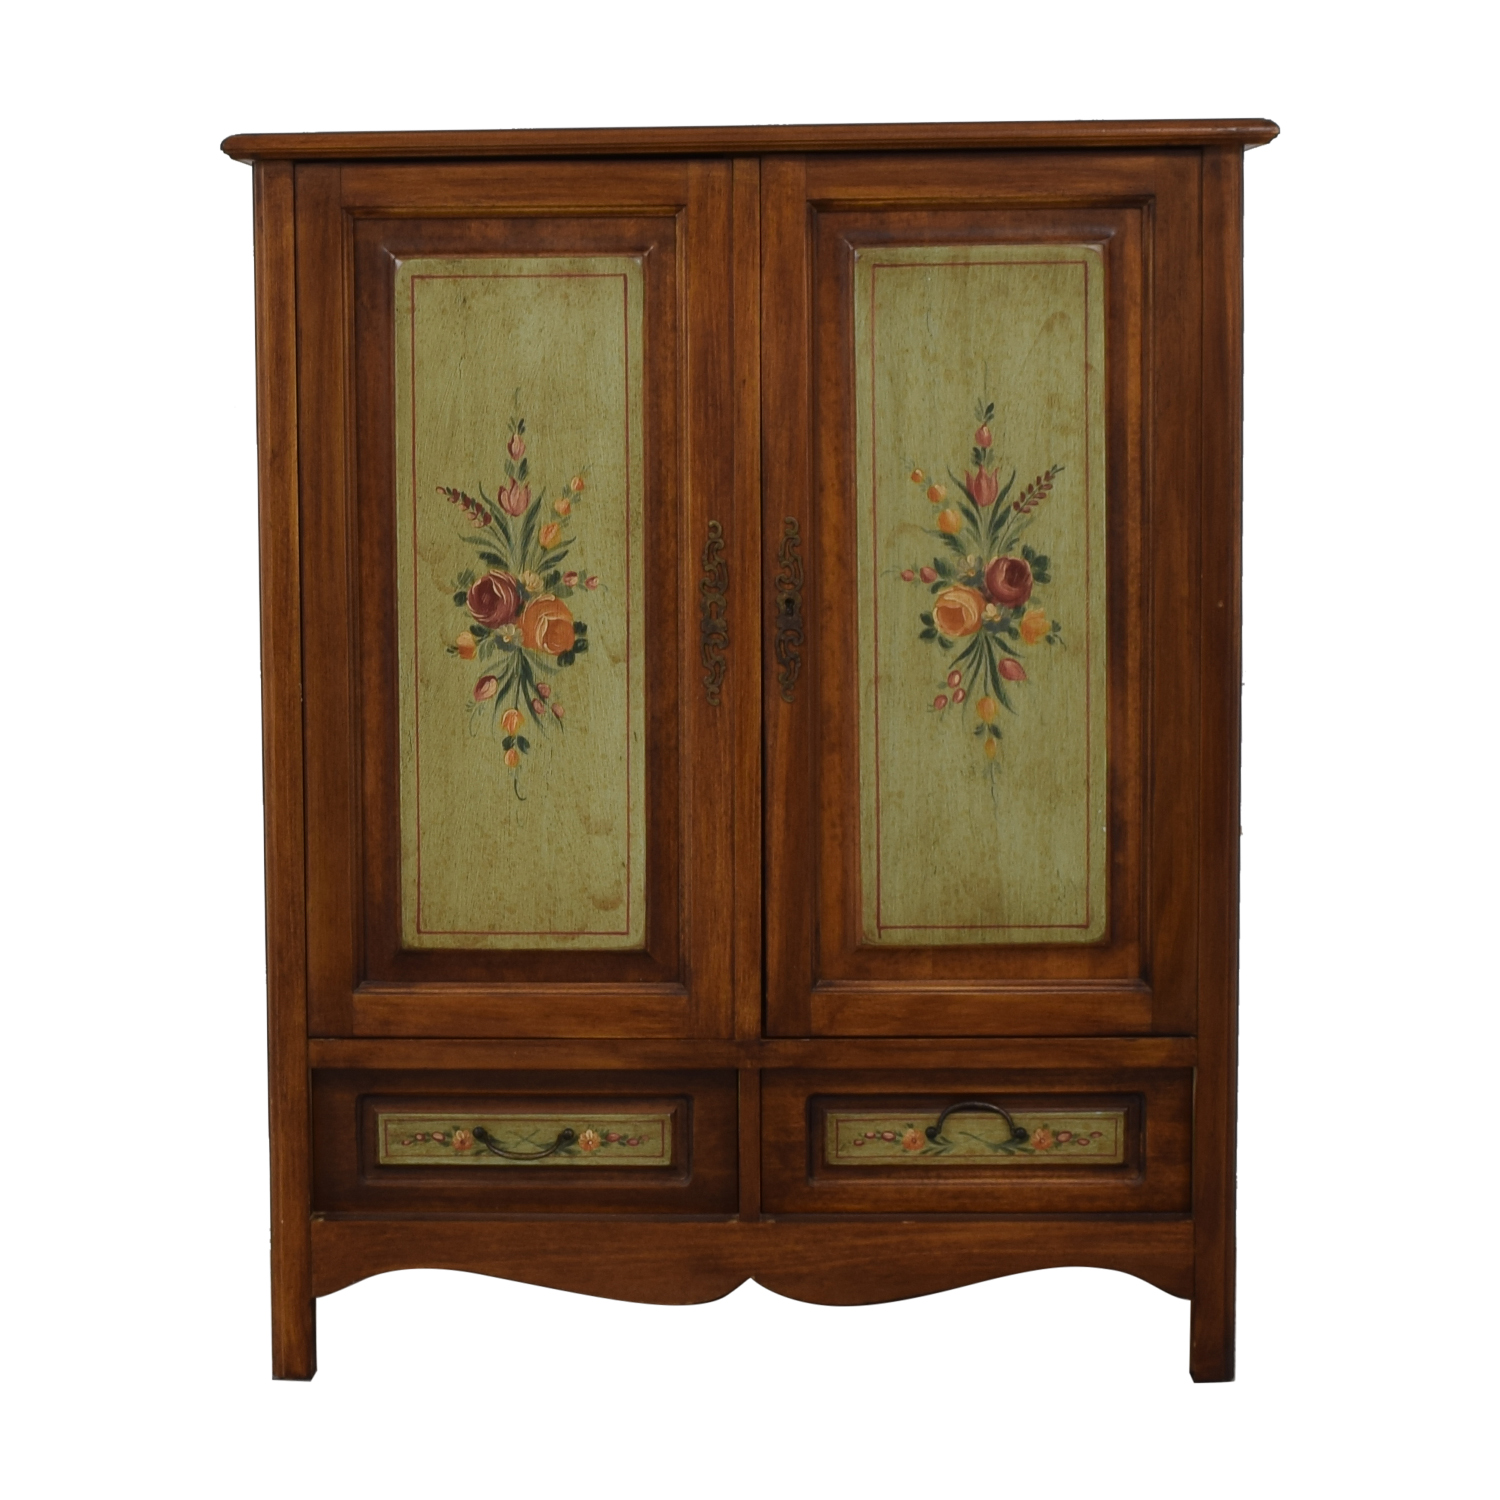 Domain Domain Walnut French Antique Floral Painted Media Cabinet with Drawers